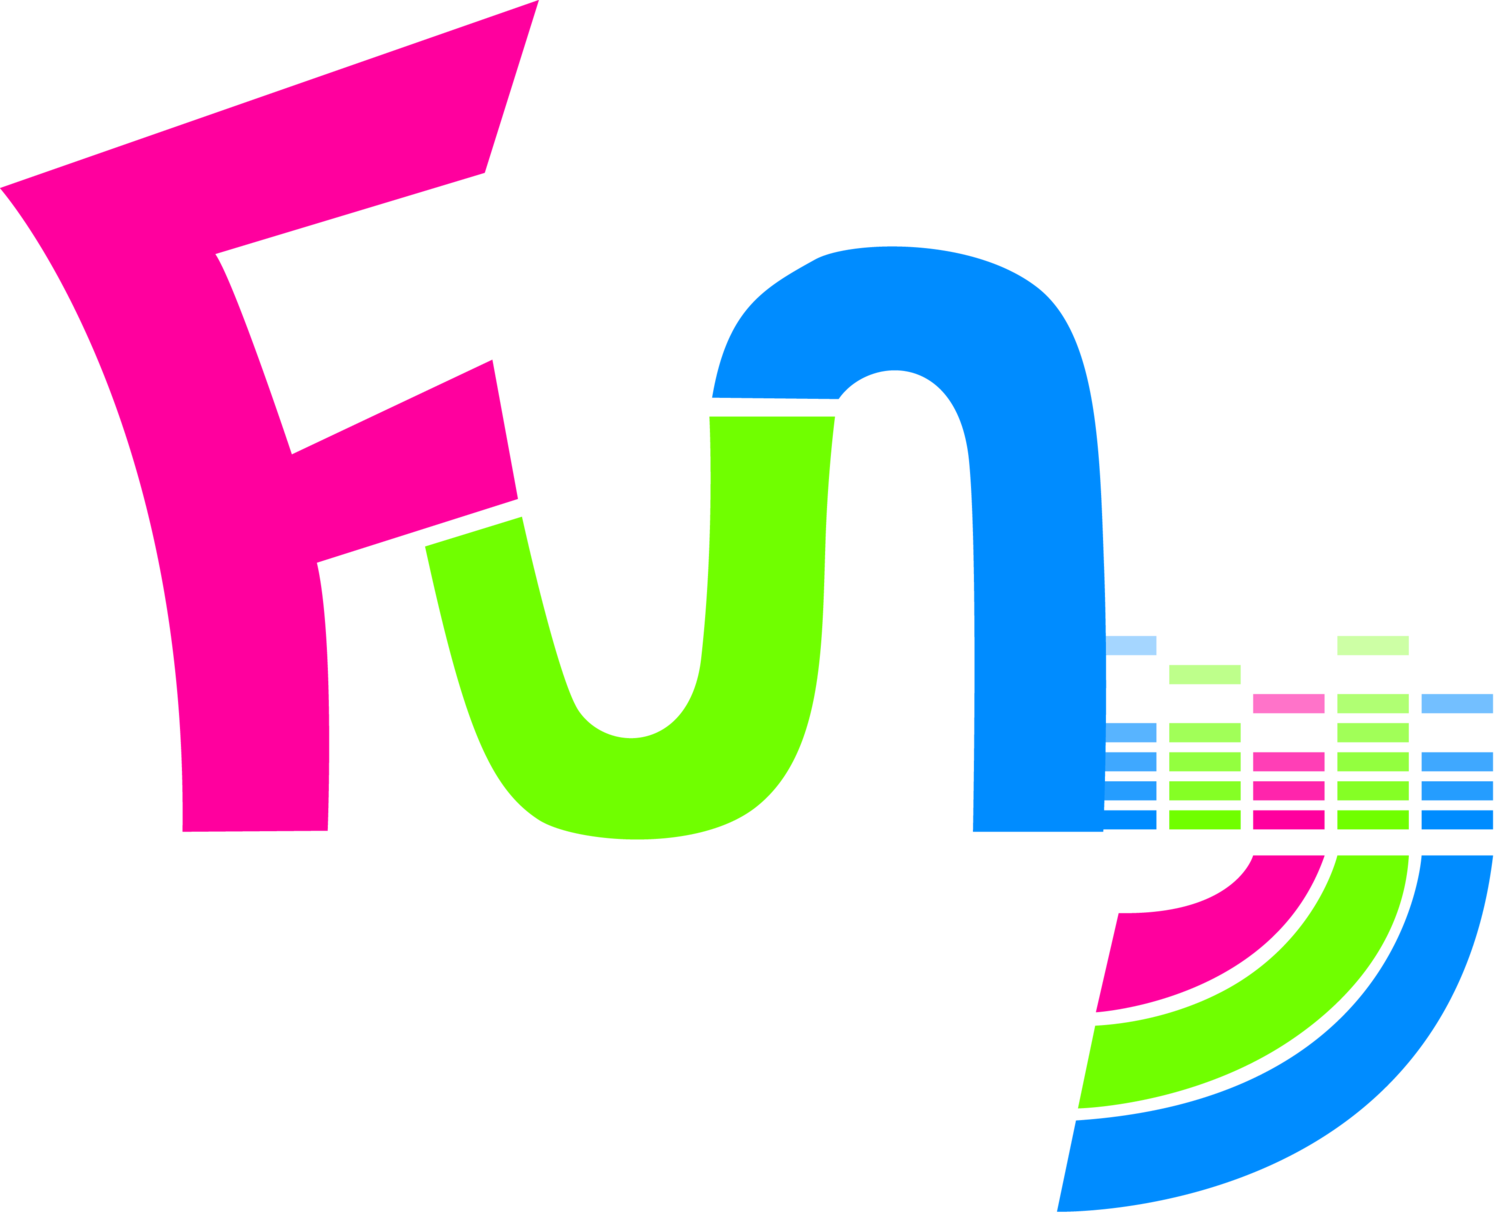 Neon fun png. About glow k races